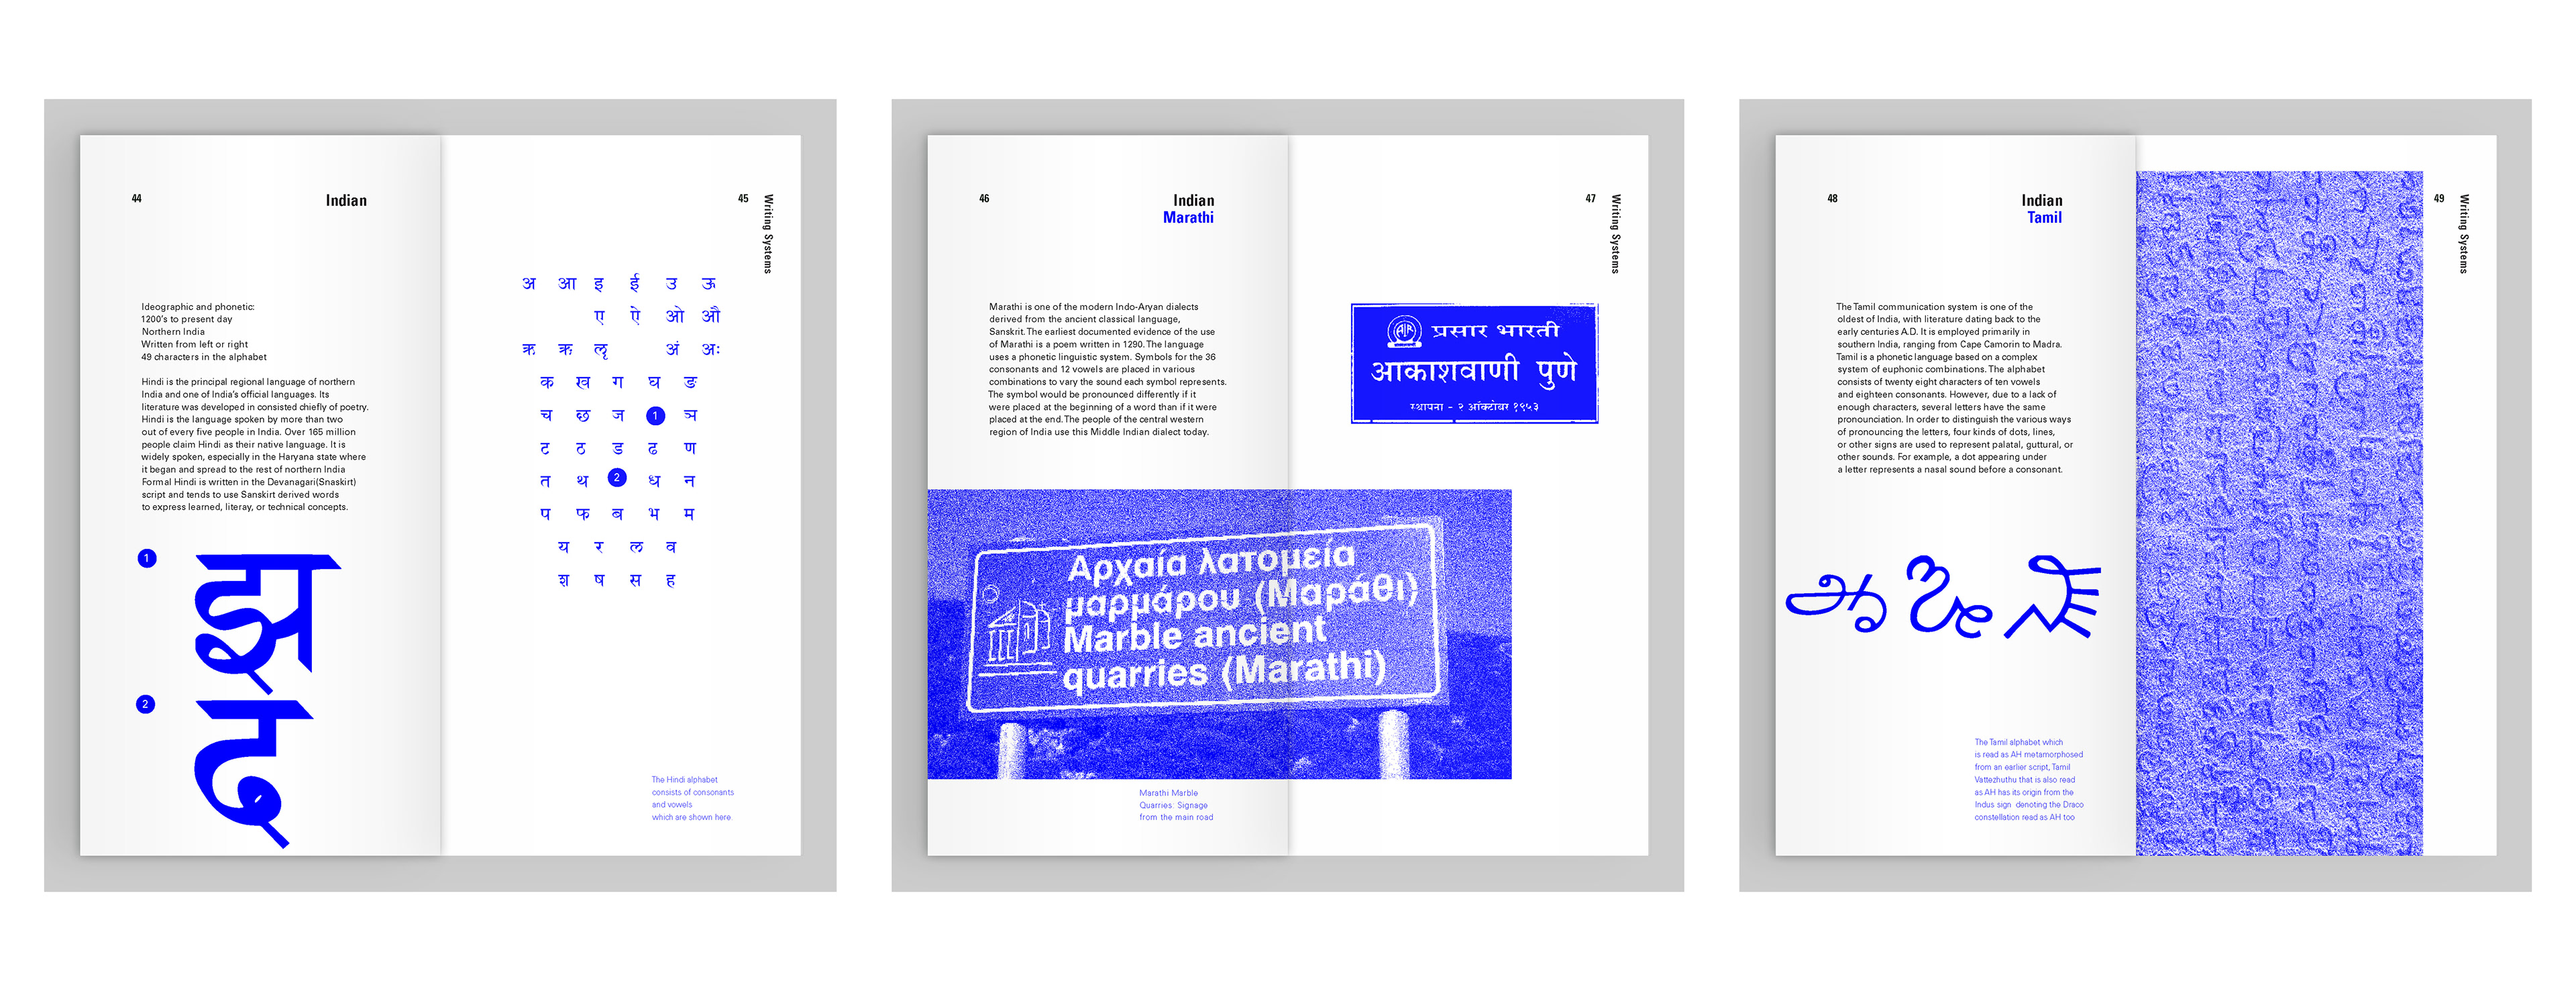 Aedan clark writing systems paired with blue captions are used to create a simple and direct connection between image and context while referencing the concept of blueprints malvernweather Image collections